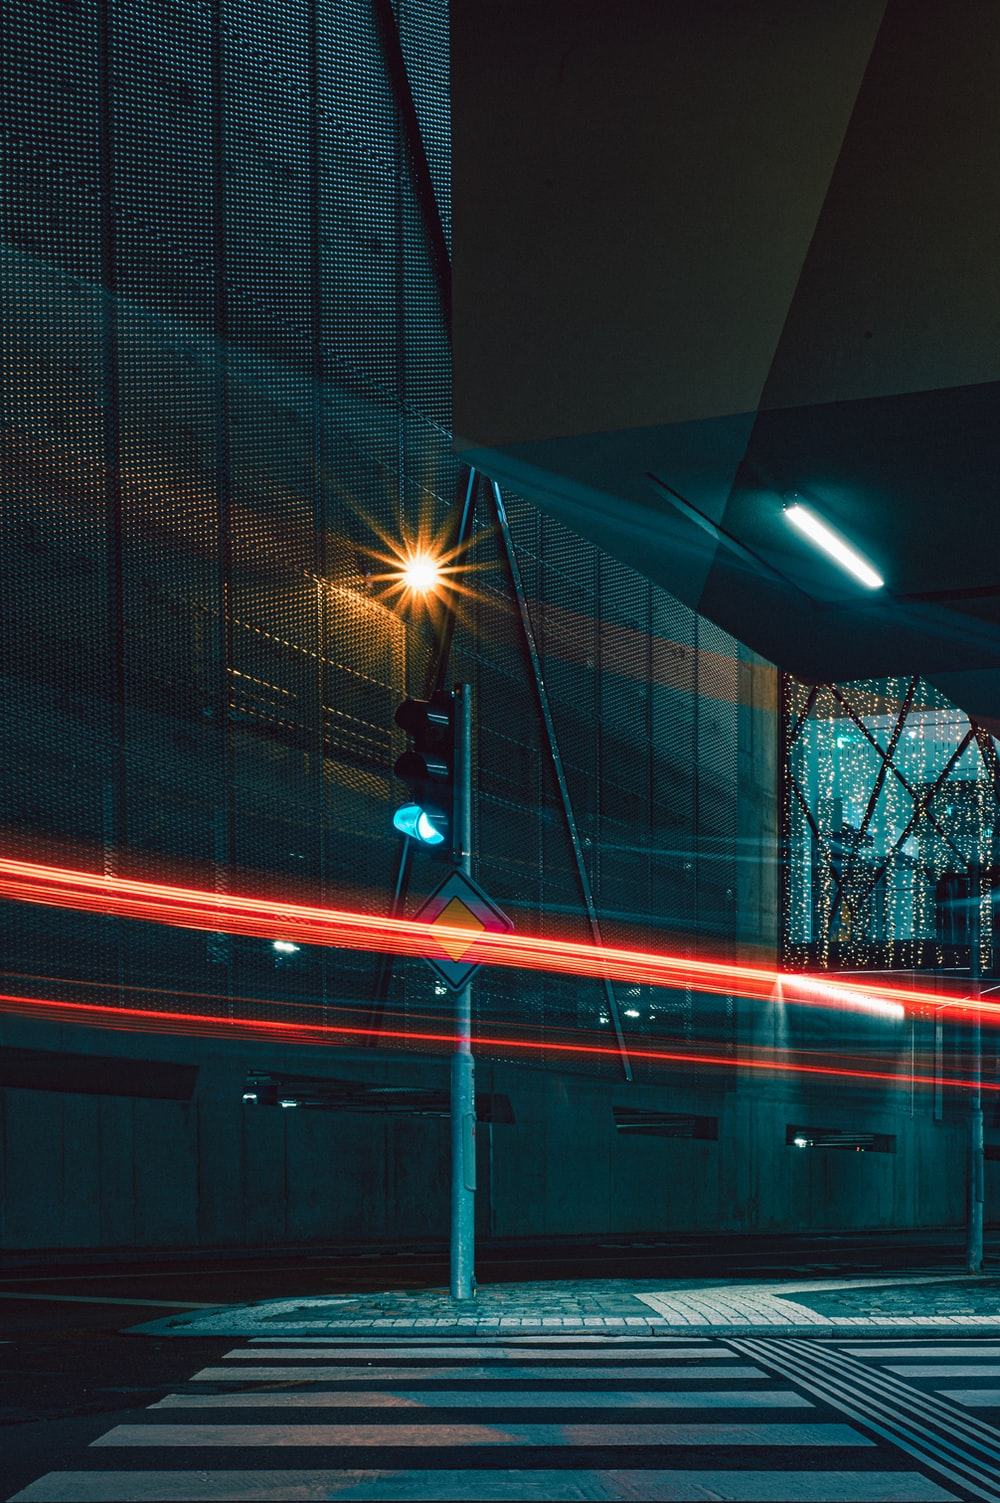 timelapse photography of red lights